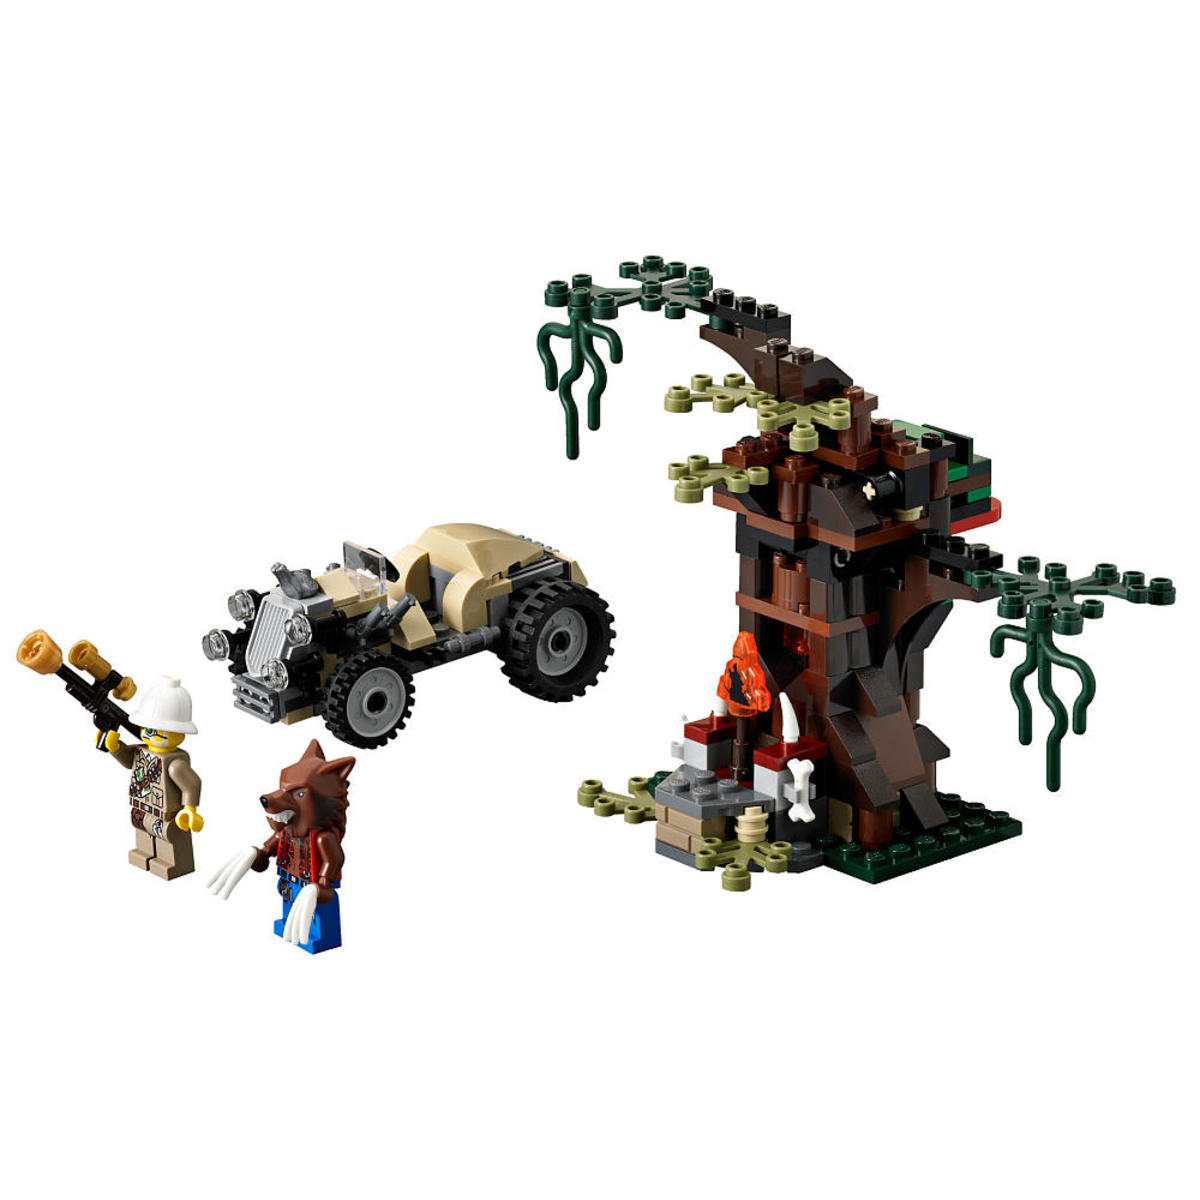 LEGO Monster Fighters The Werewolf 9463 Assembled